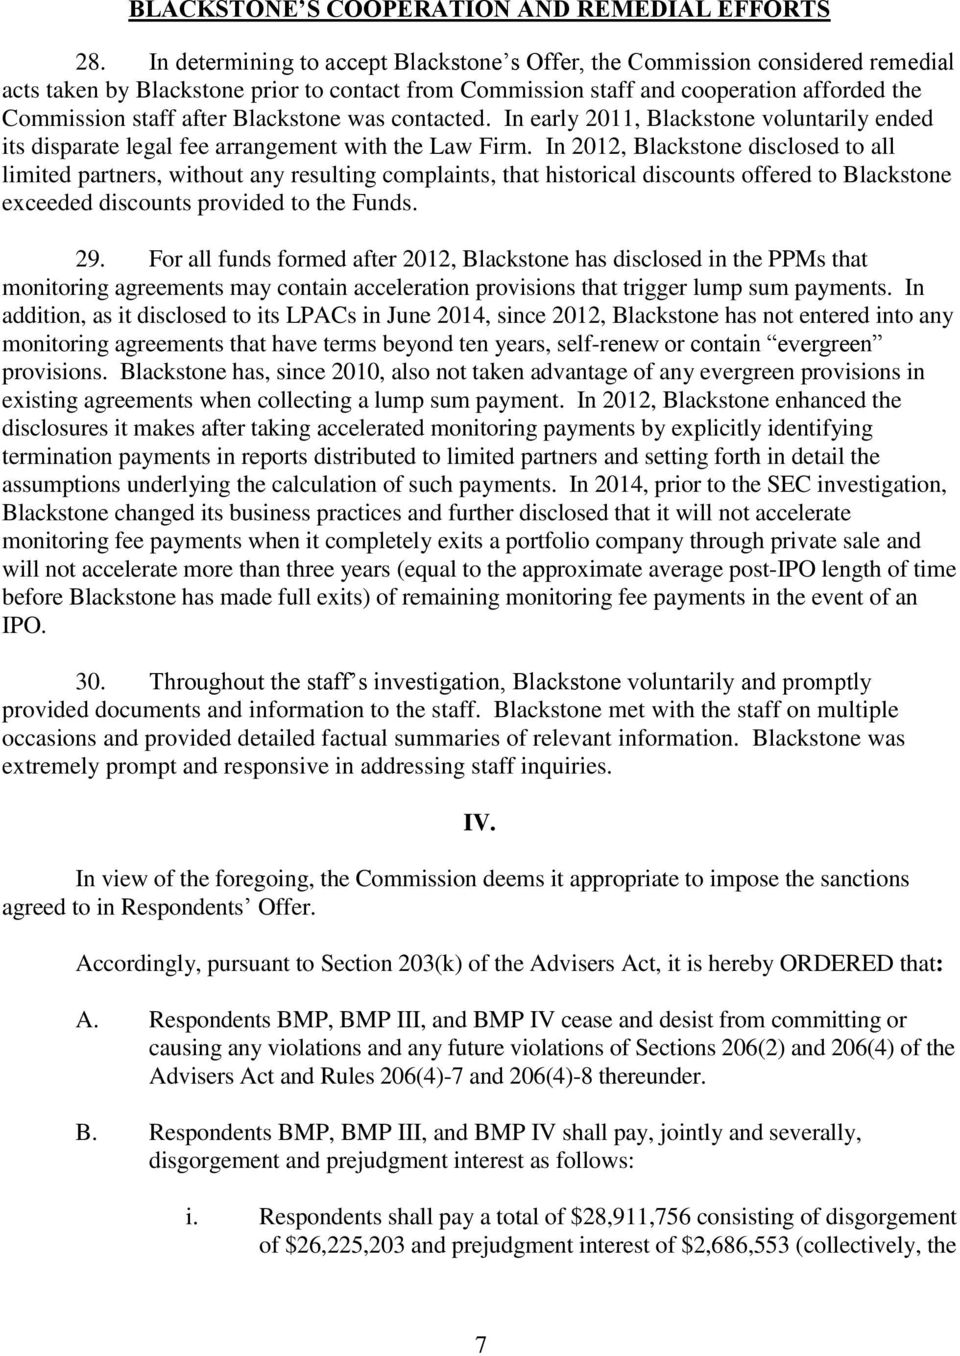 Blackstone was contacted. In early 2011, Blackstone voluntarily ended its disparate legal fee arrangement with the Law Firm.